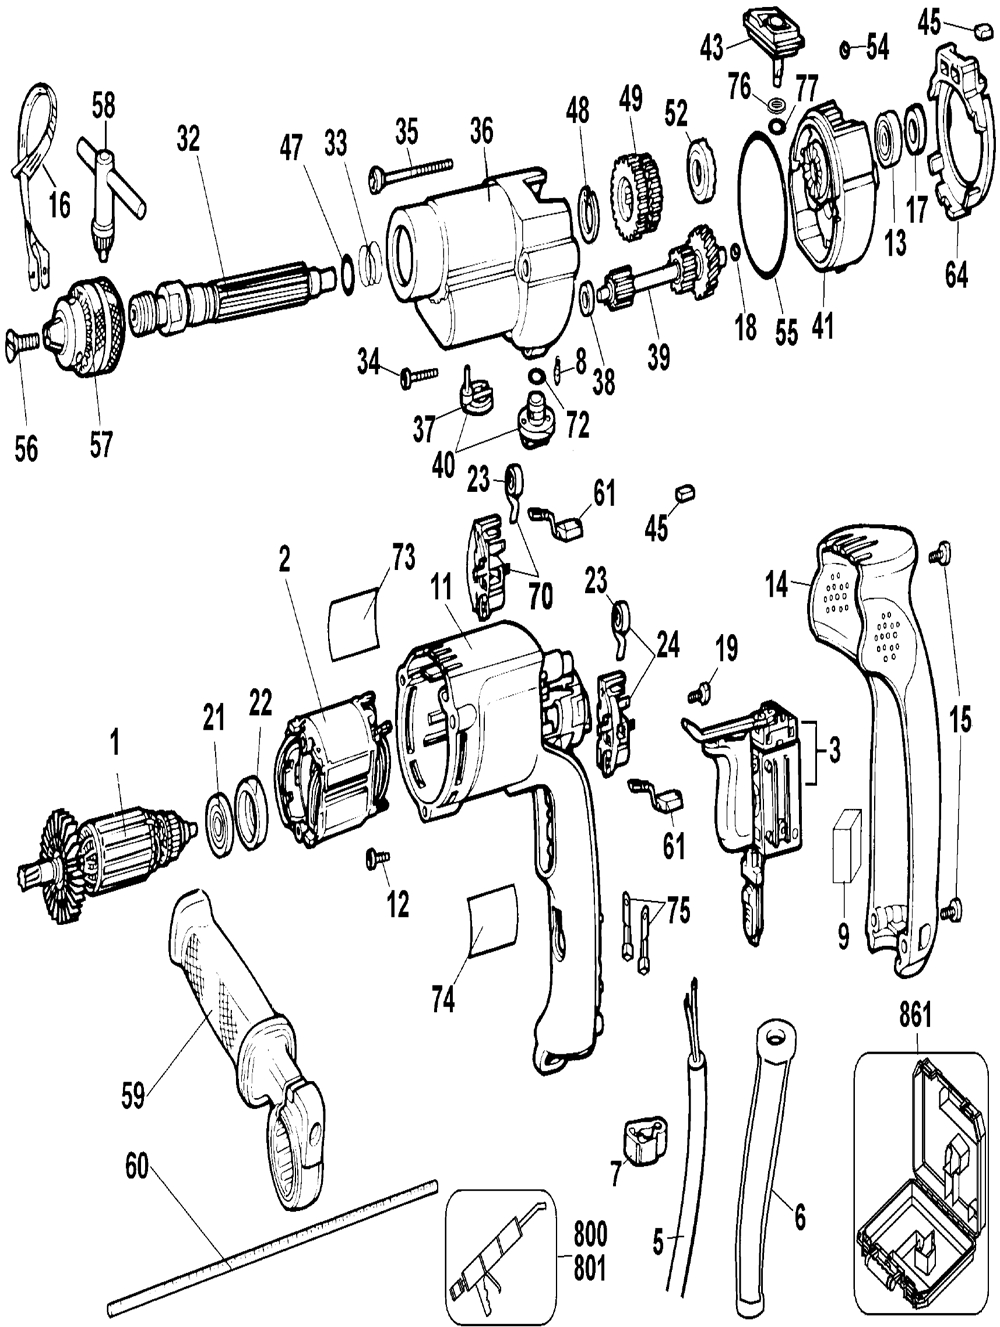 De Walt Tool Parts Diagrams - Wiring Schematics De Walt Grinder Wiring Diagram on